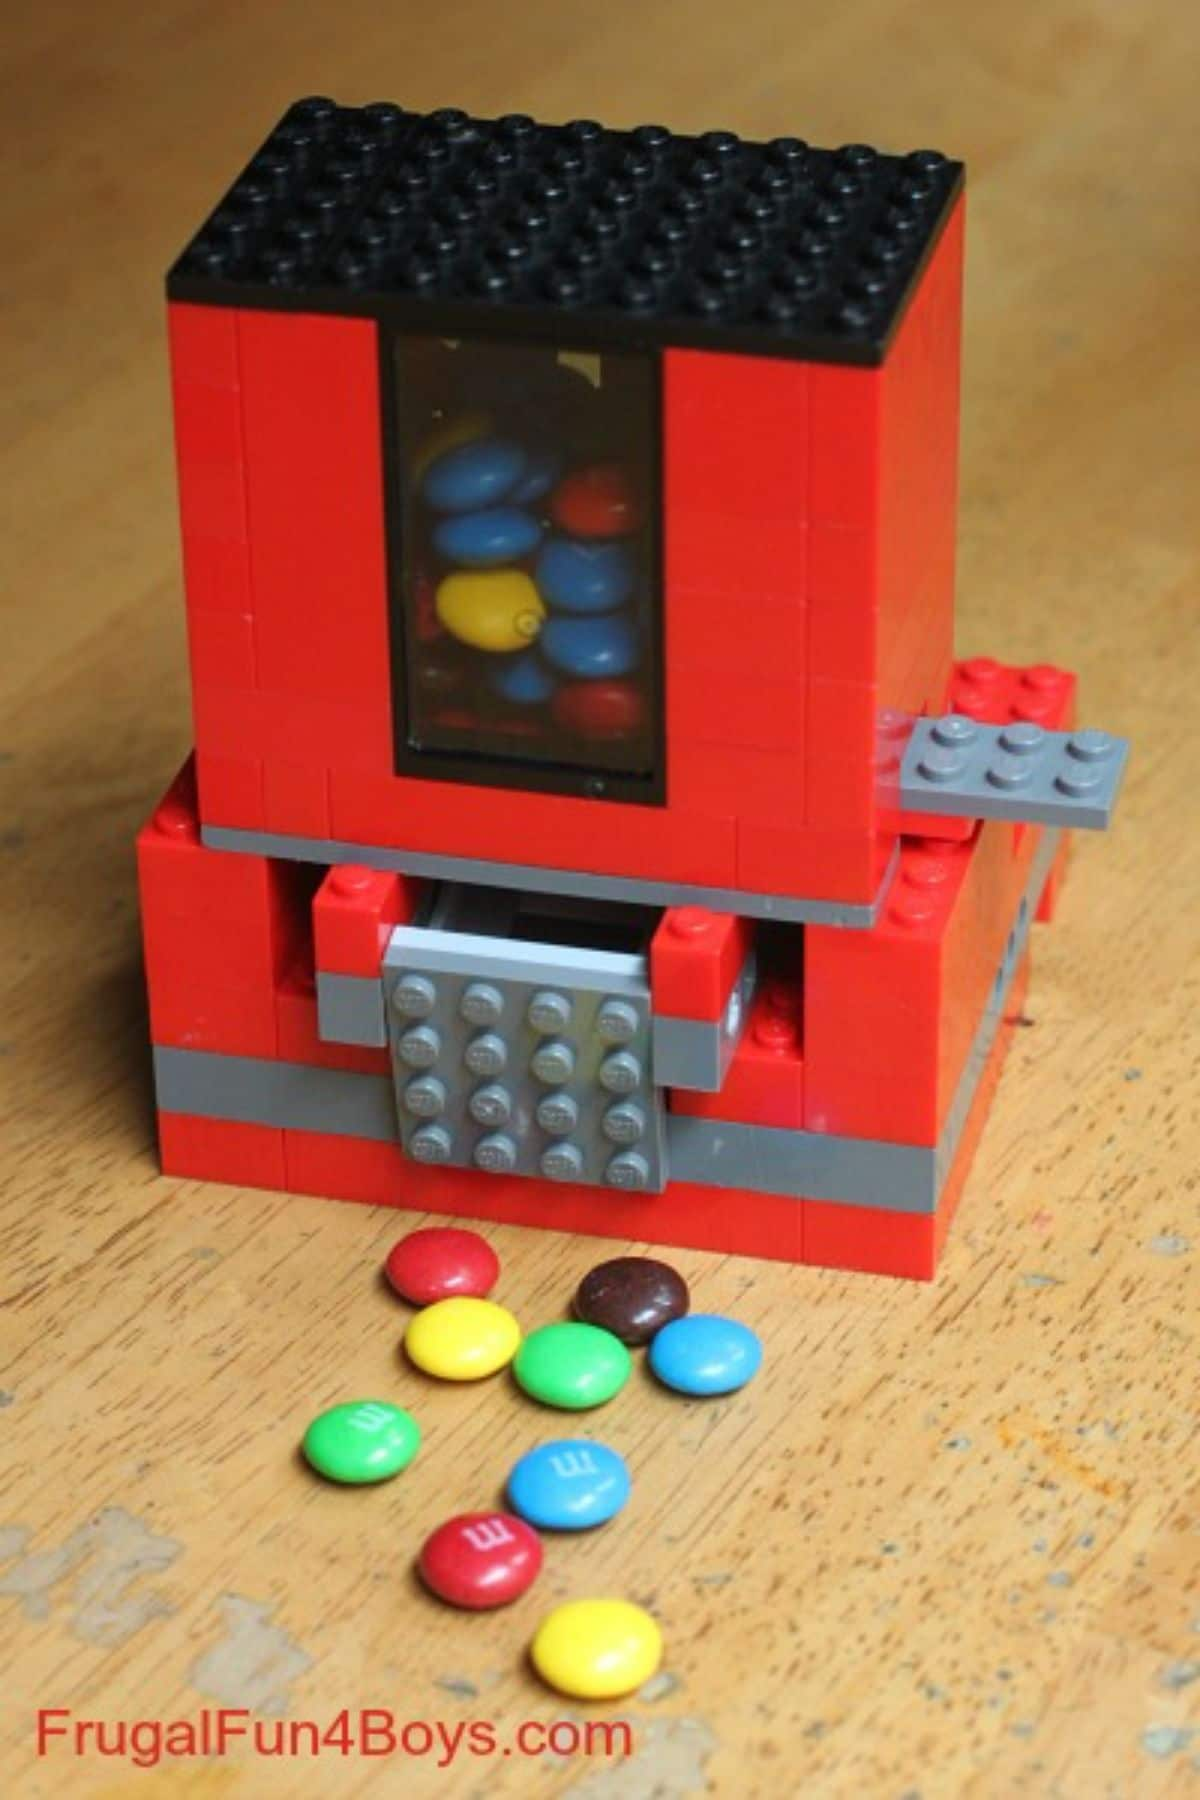 a candy dispenser is made out of lego. candy sweets are in front of it